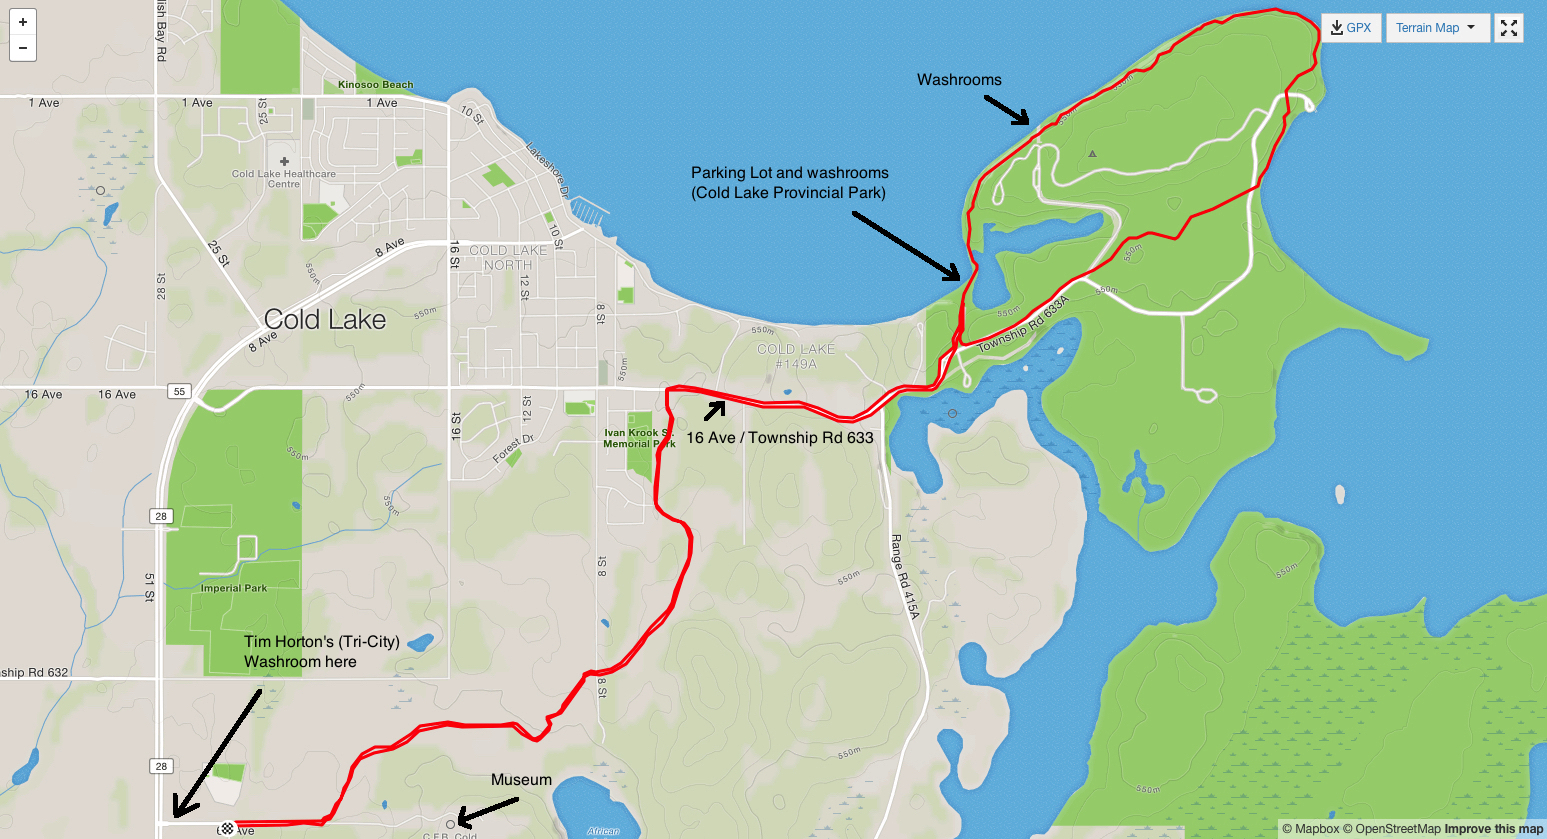 Map for Countryside Trail Run (click map to enlarge)